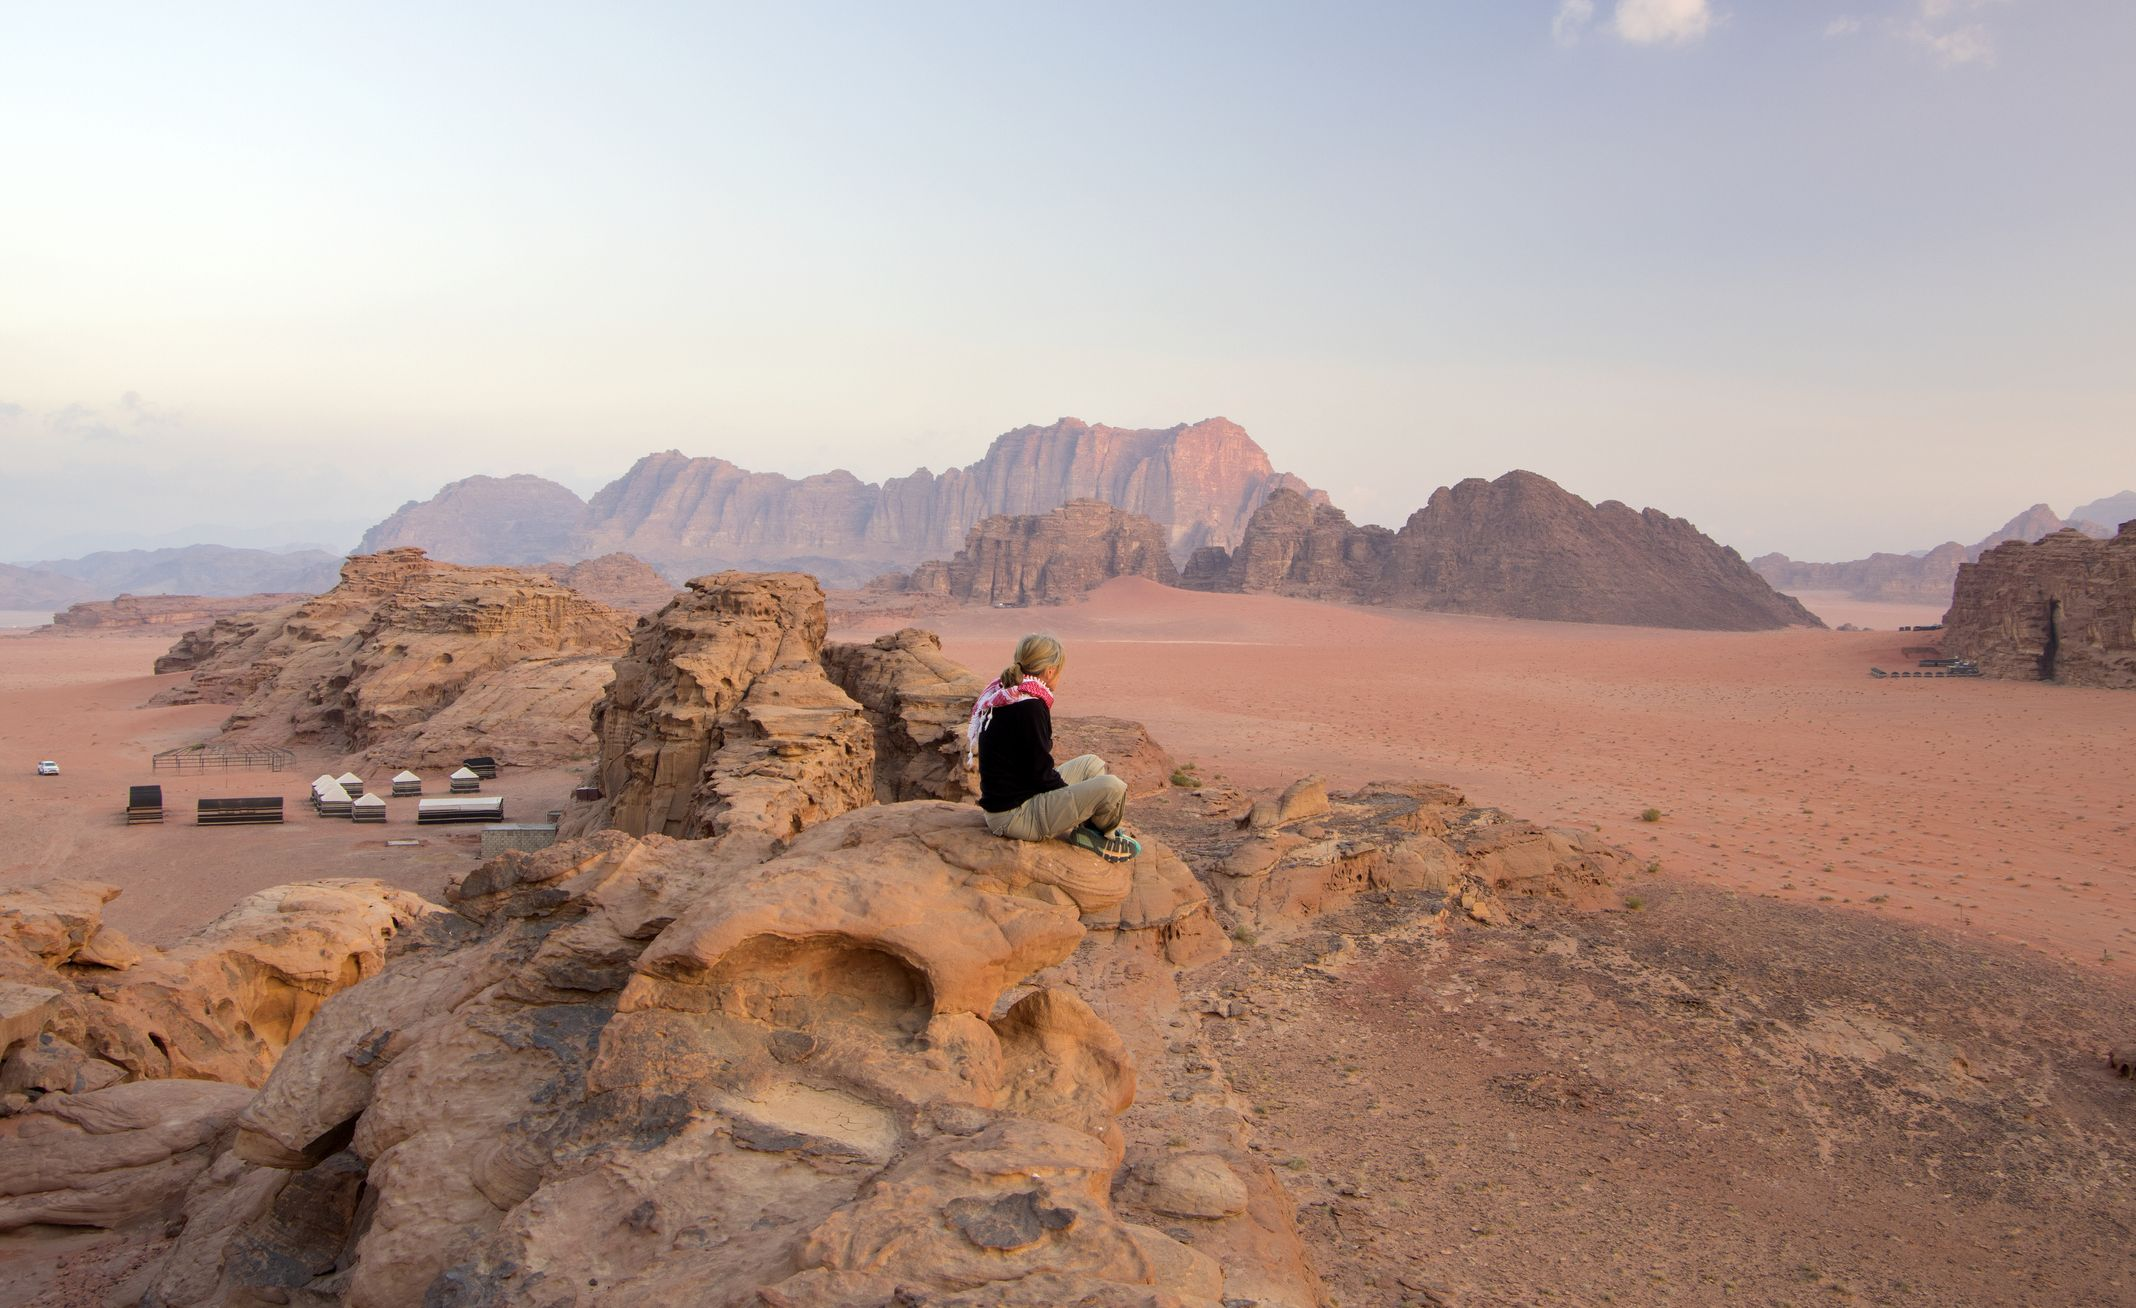 A woman in Wadi Rum, Valley of Moon, Jordan.